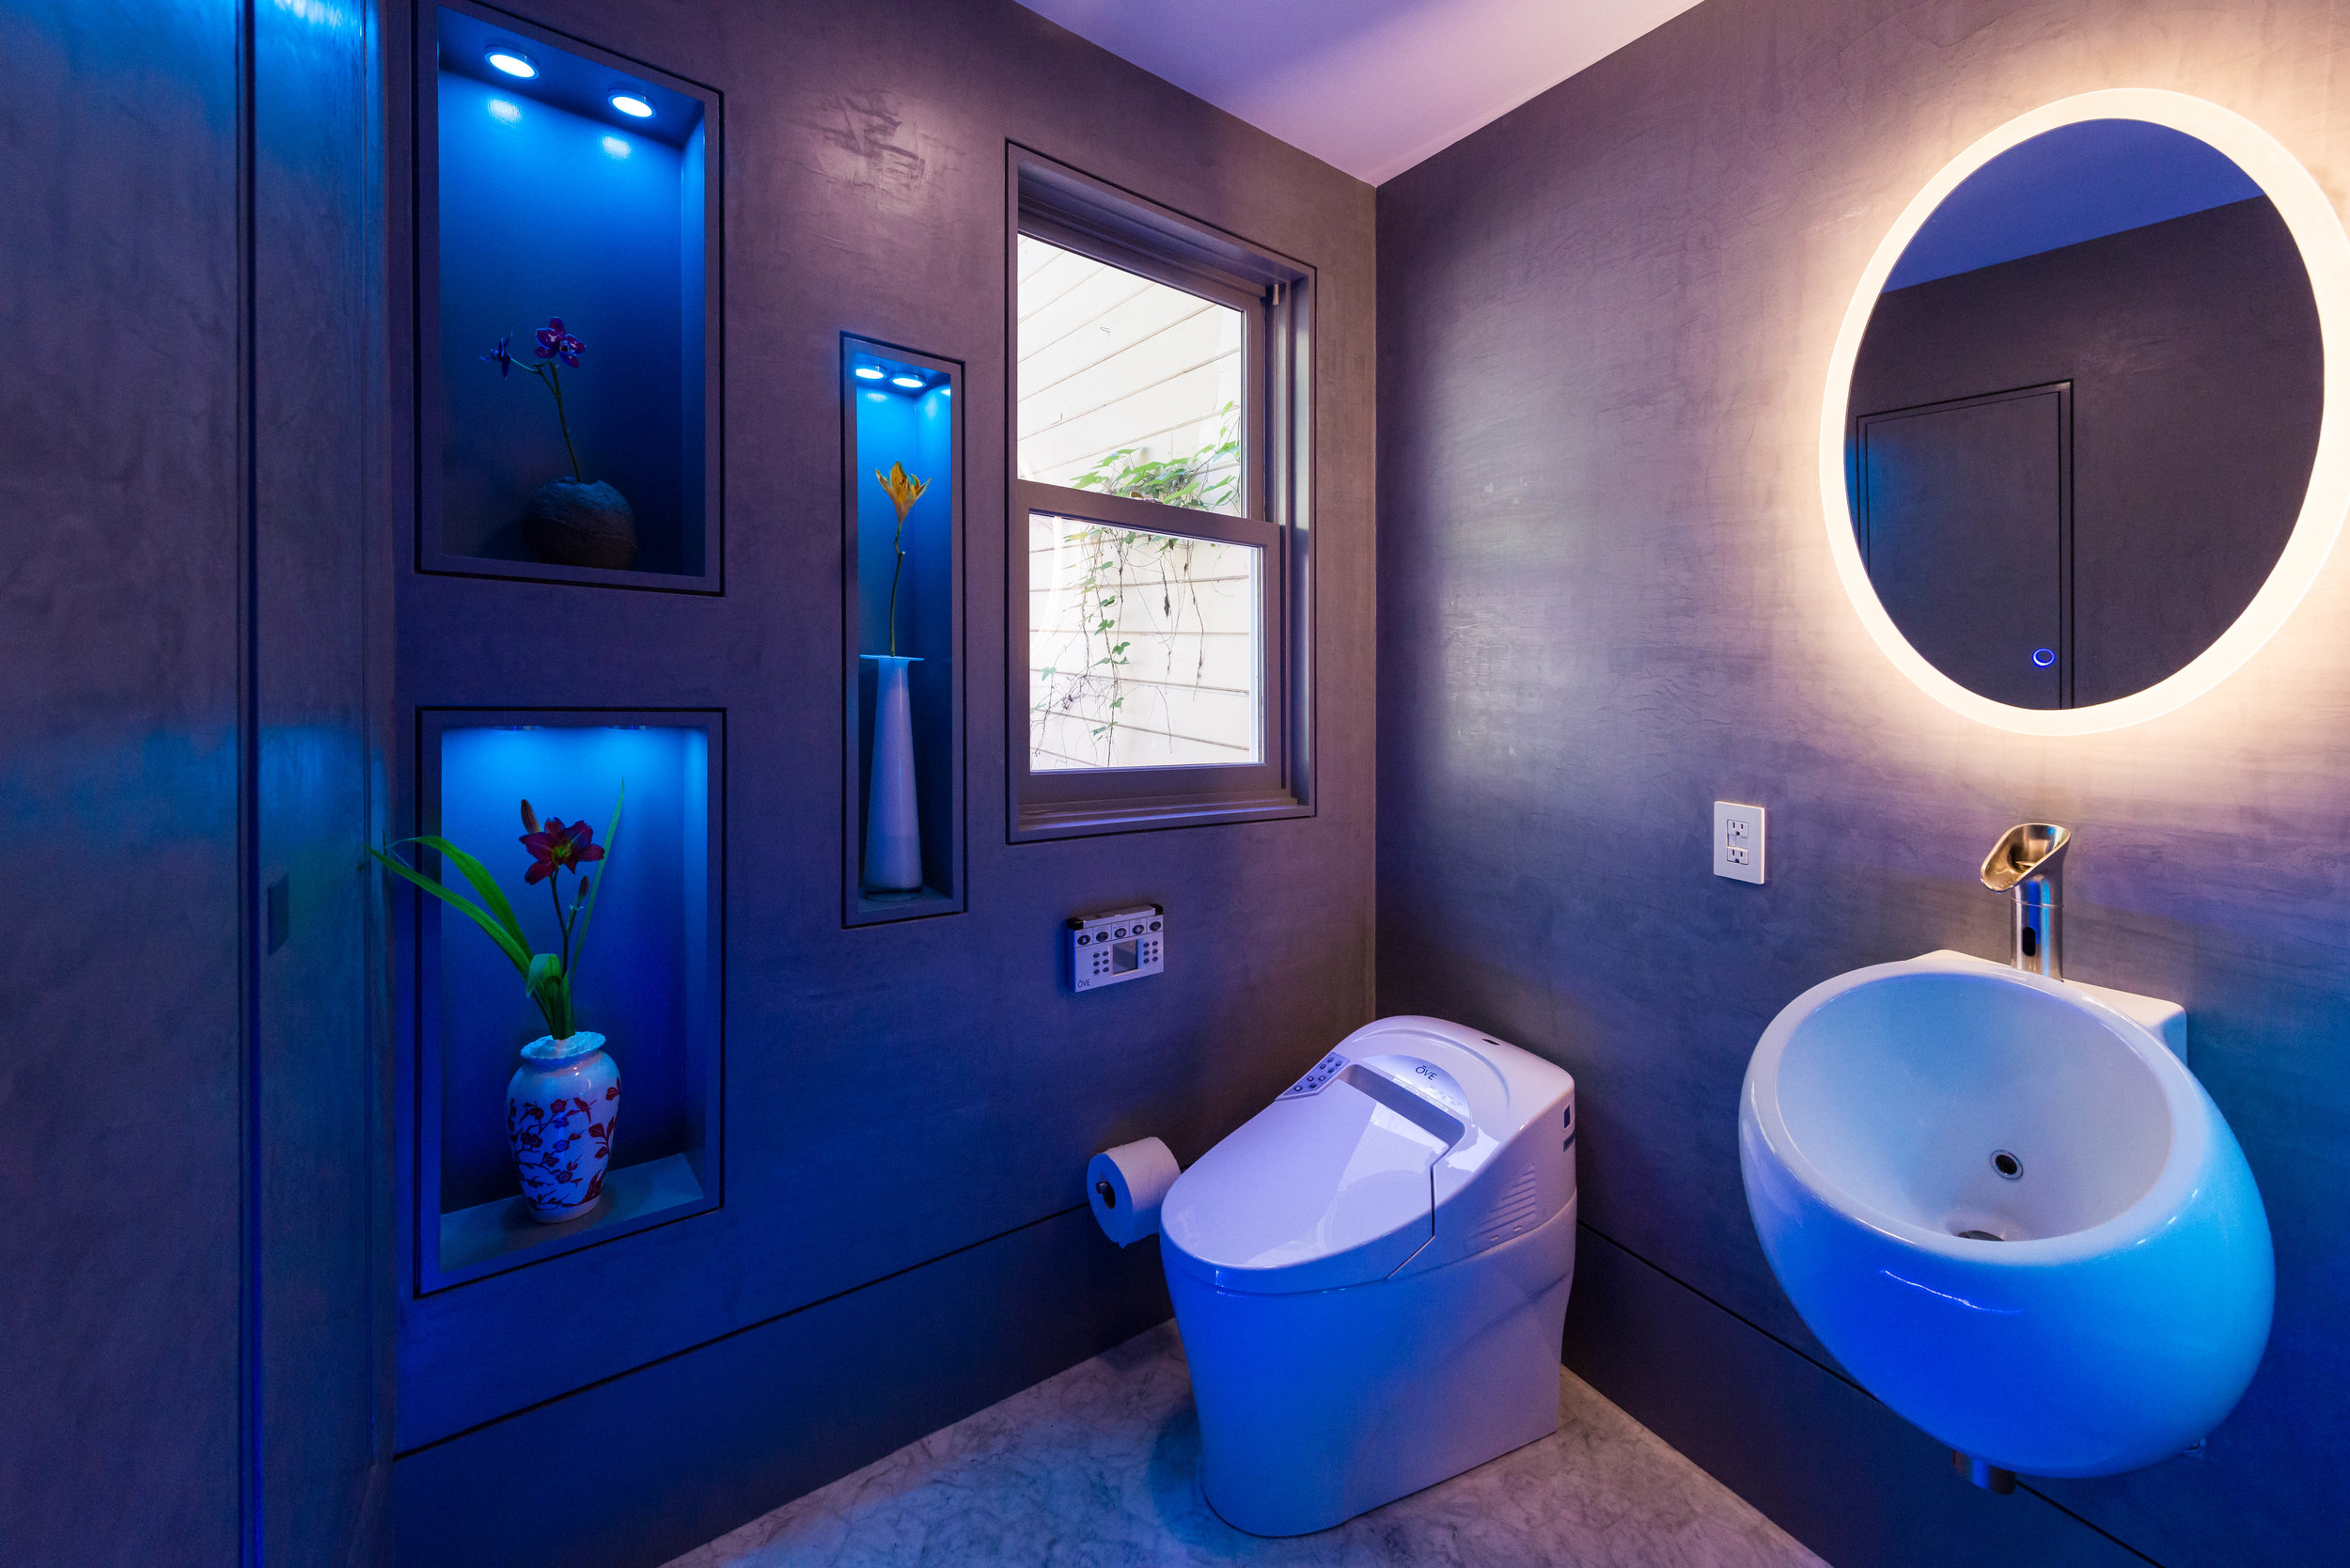 bathroom and illumination Design by david millar.